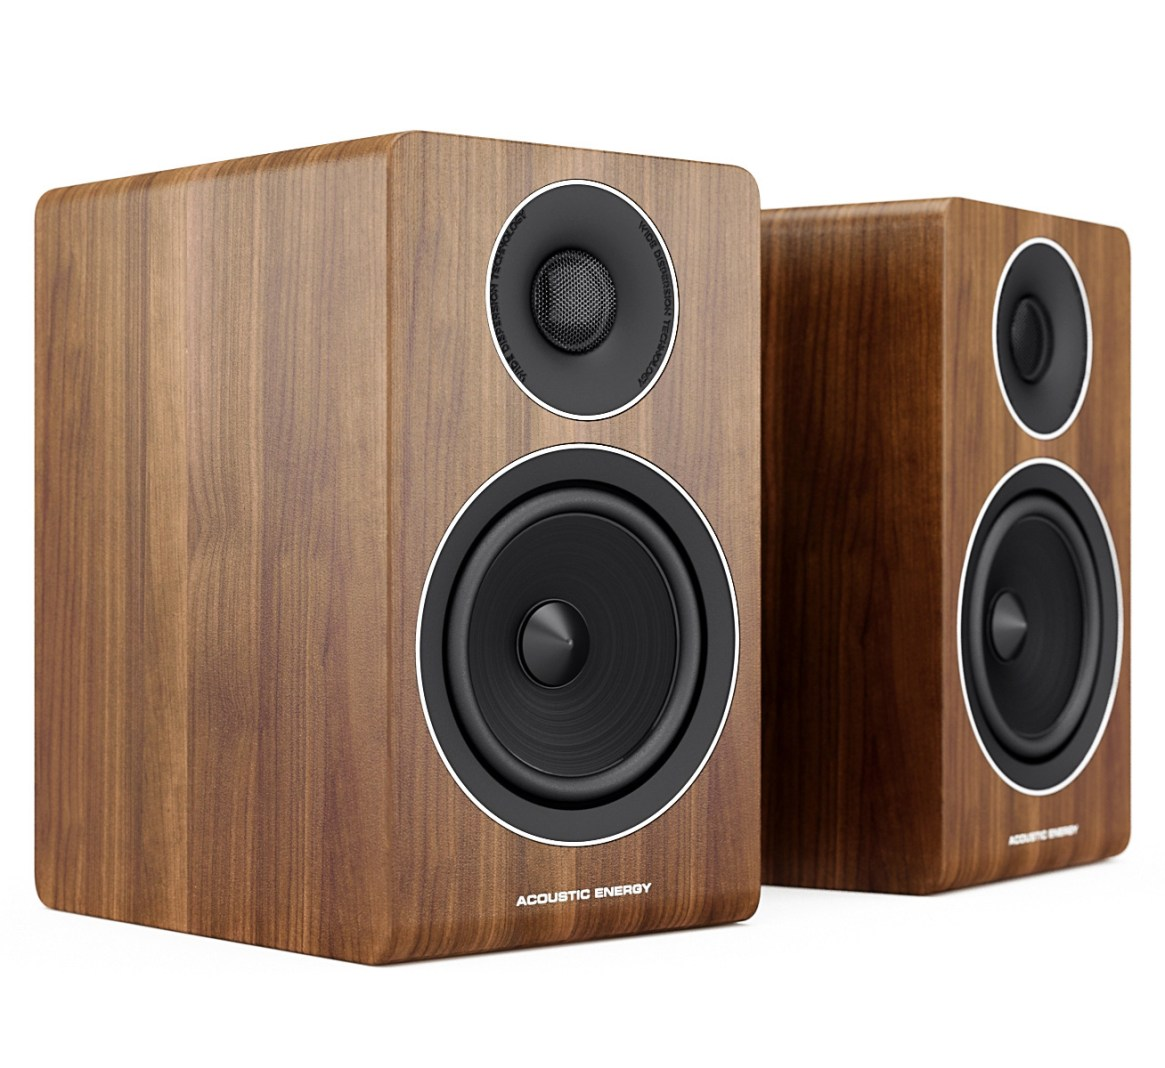 Acoustic Energy AE300 (Walnut)